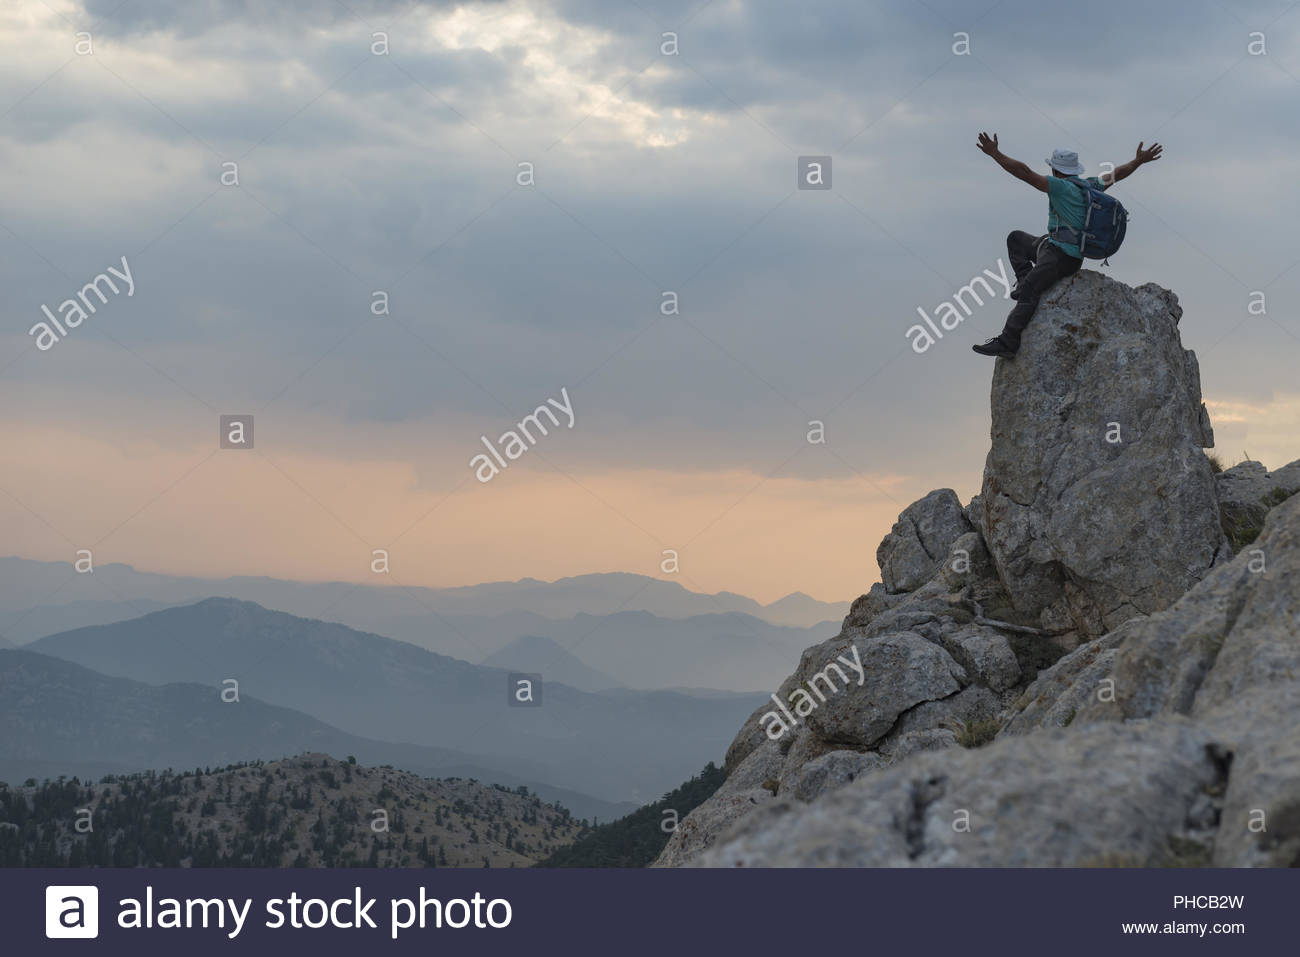 despite the challenges achieve  successful people - Stock Image